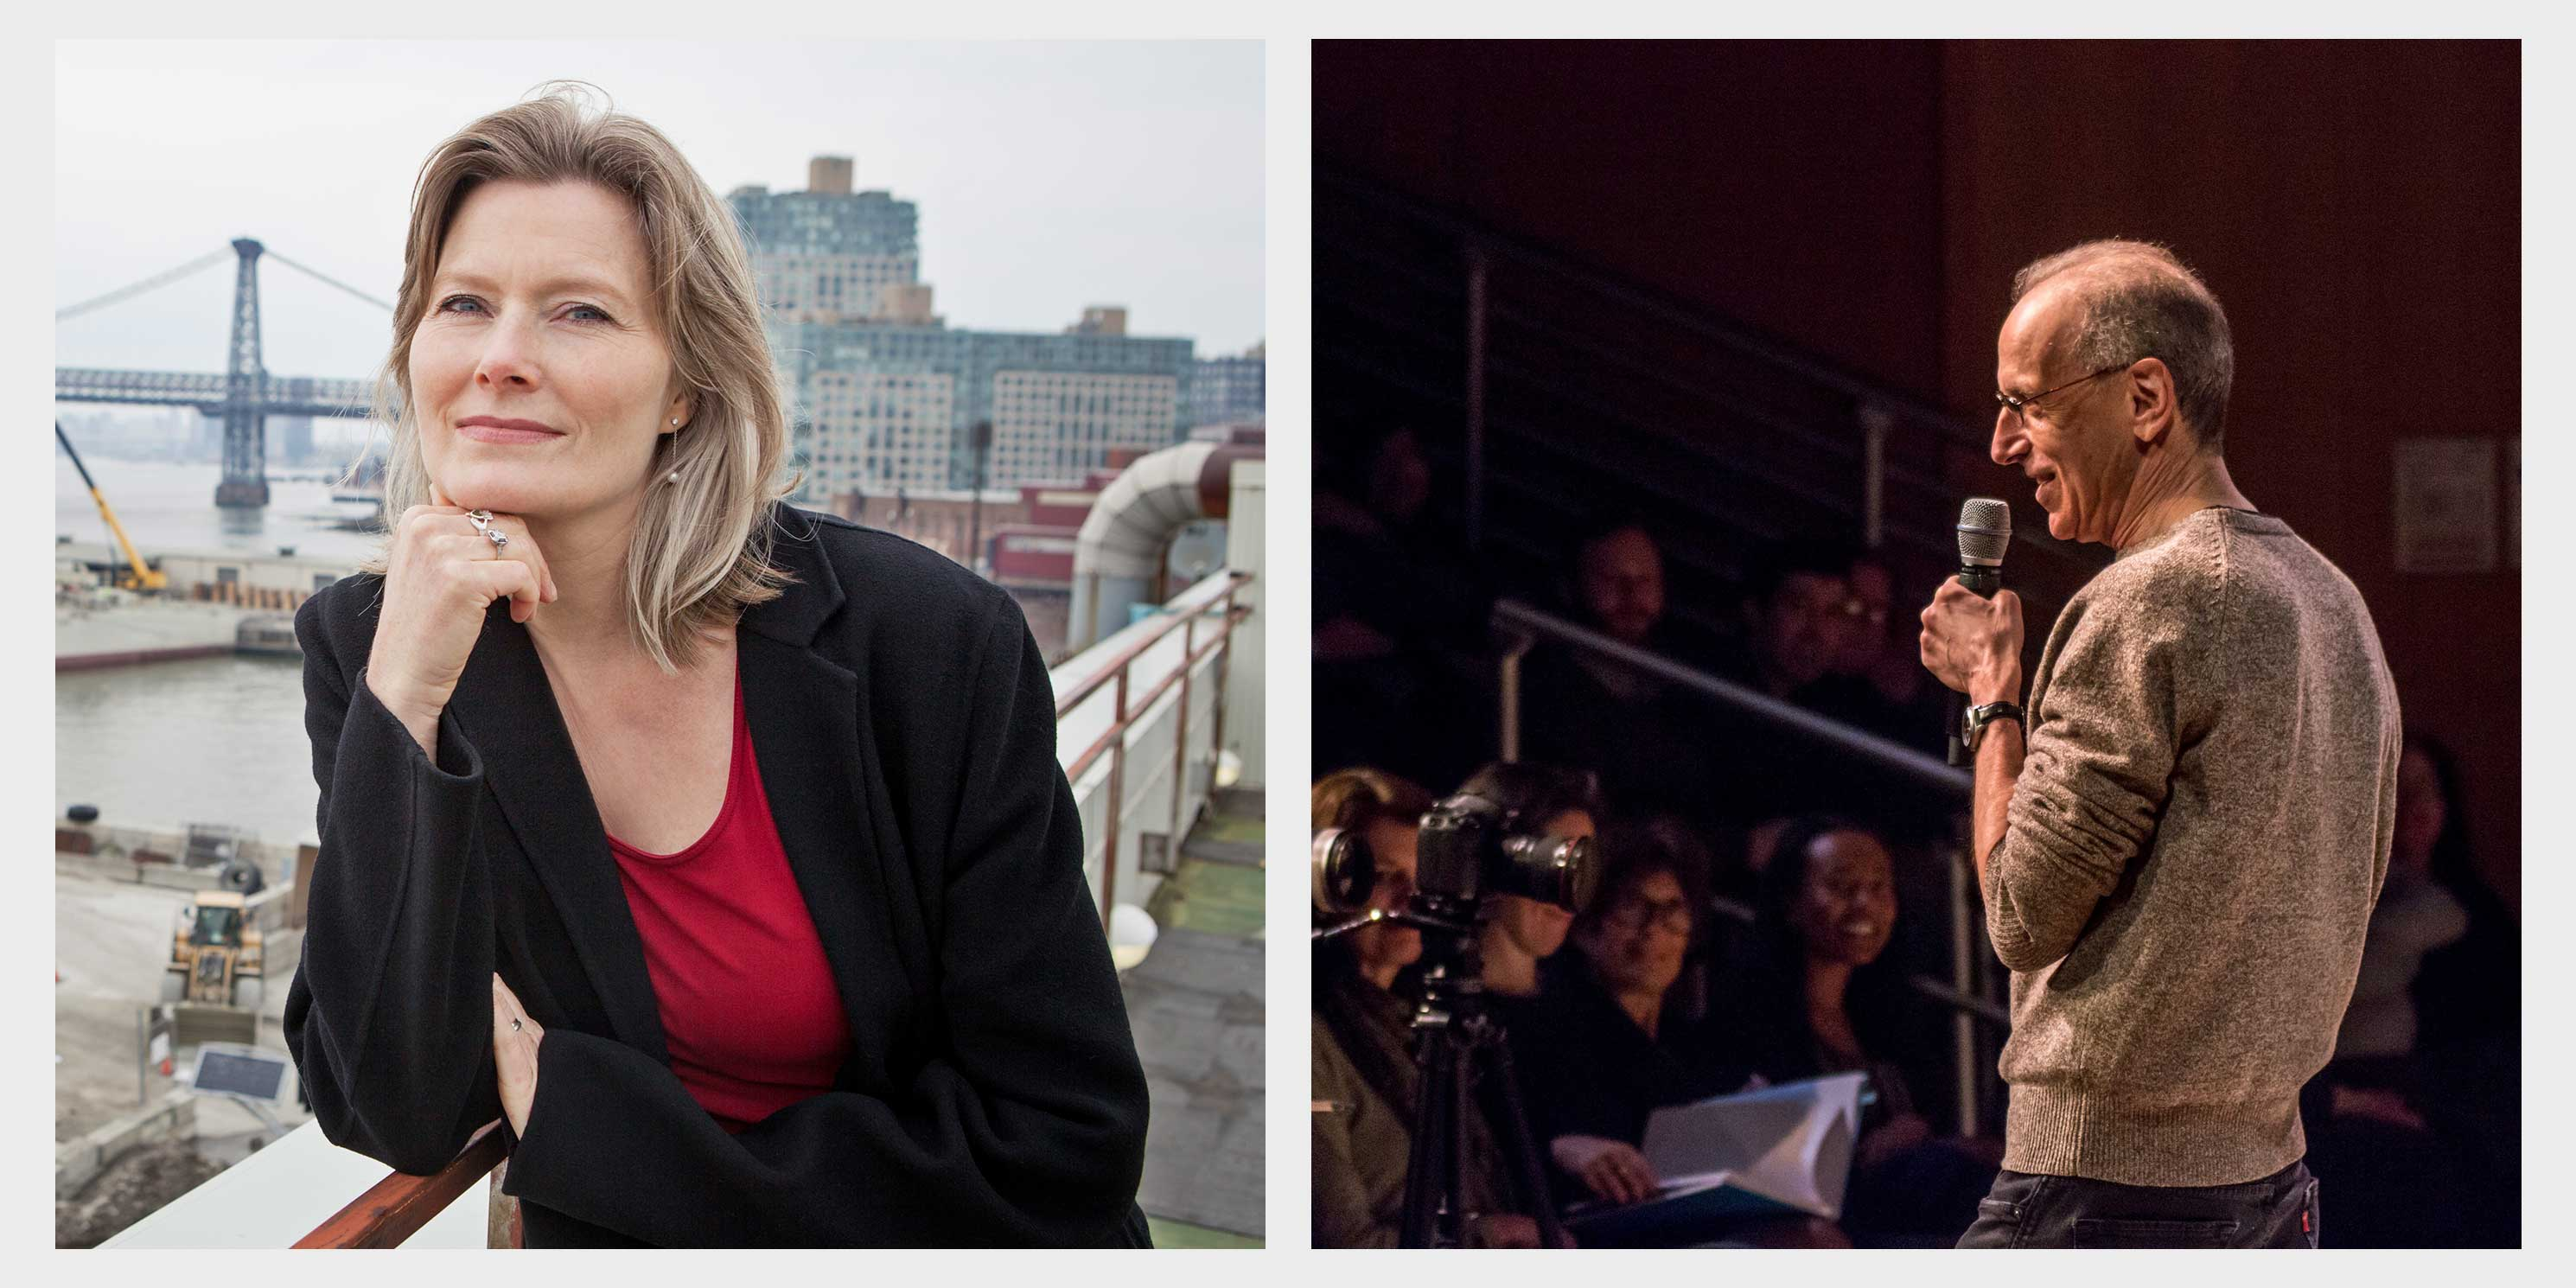 collage of photos: Jennifer Egan poses on a rooftop, Randy Cohen speaks on stage